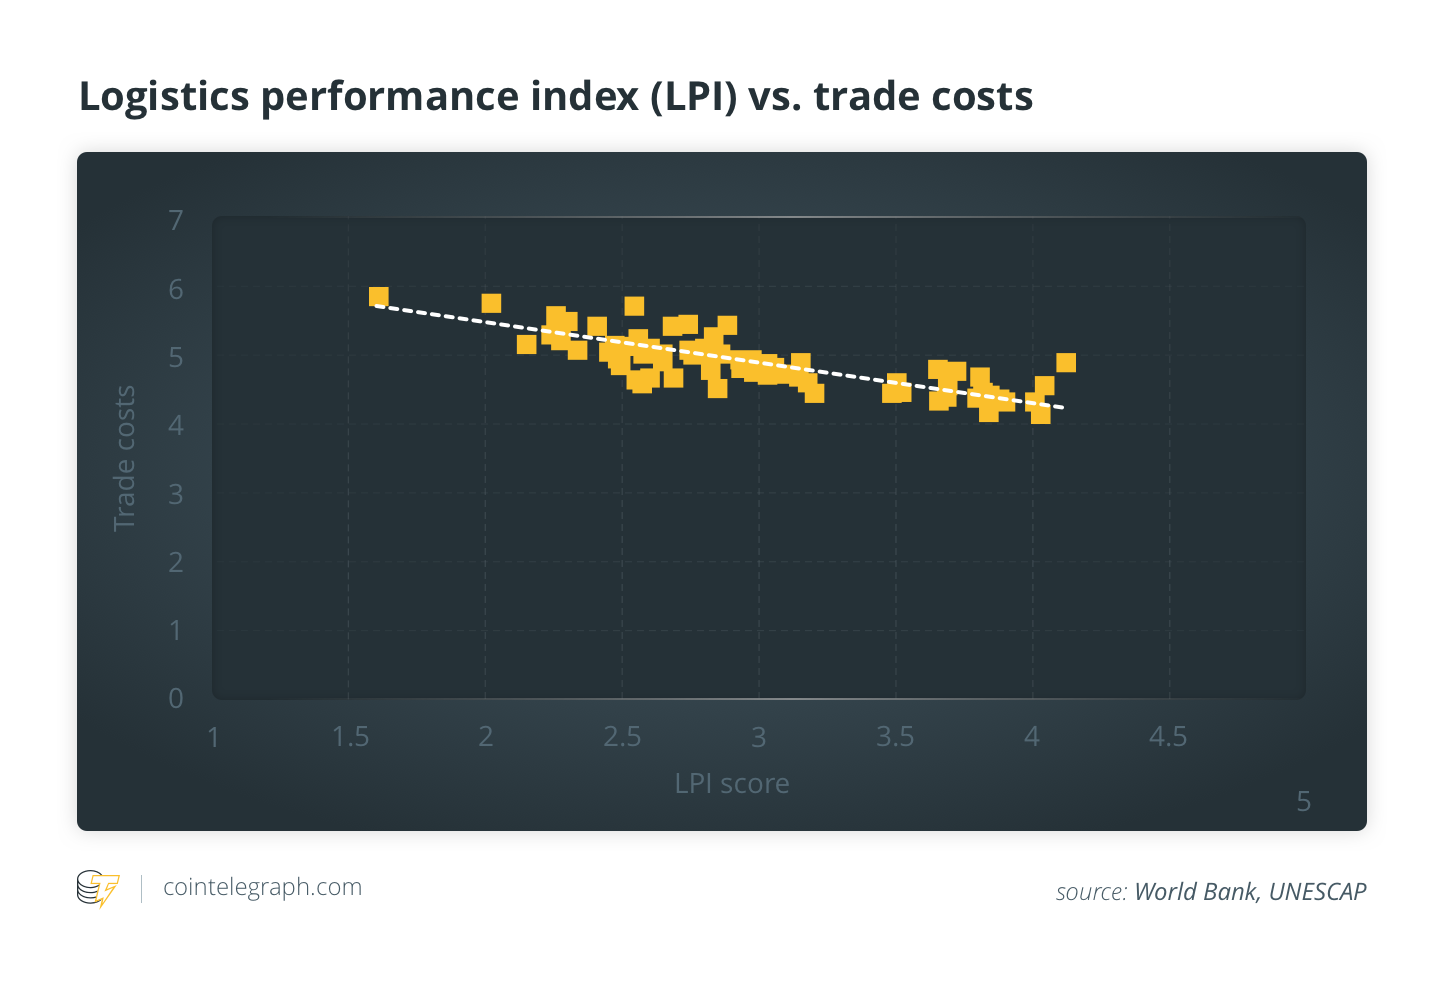 Correlation between LPI score and trade costs